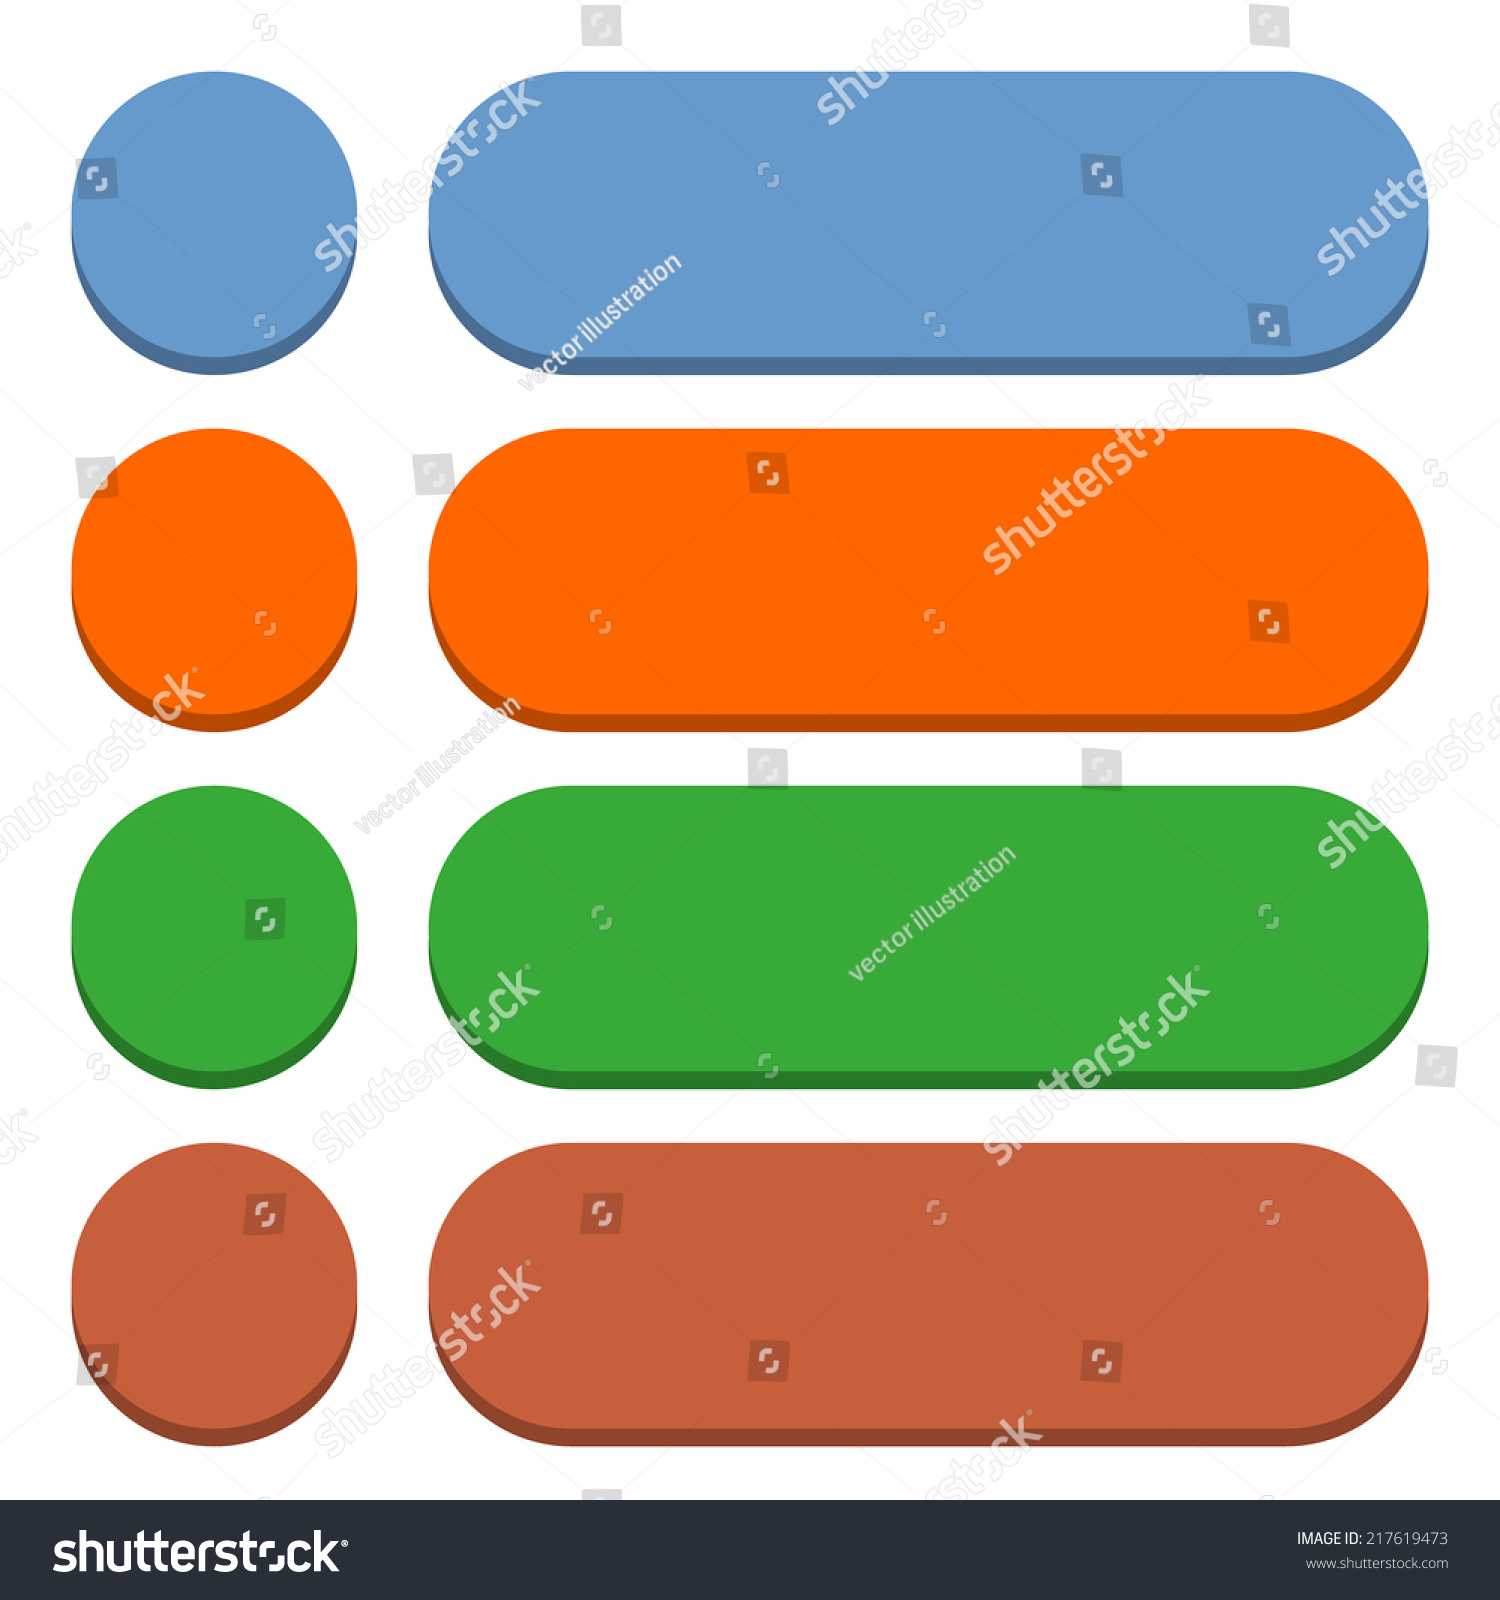 Blank Circle Rounded Rectangle Icon Isolated Stock Vector HD ...